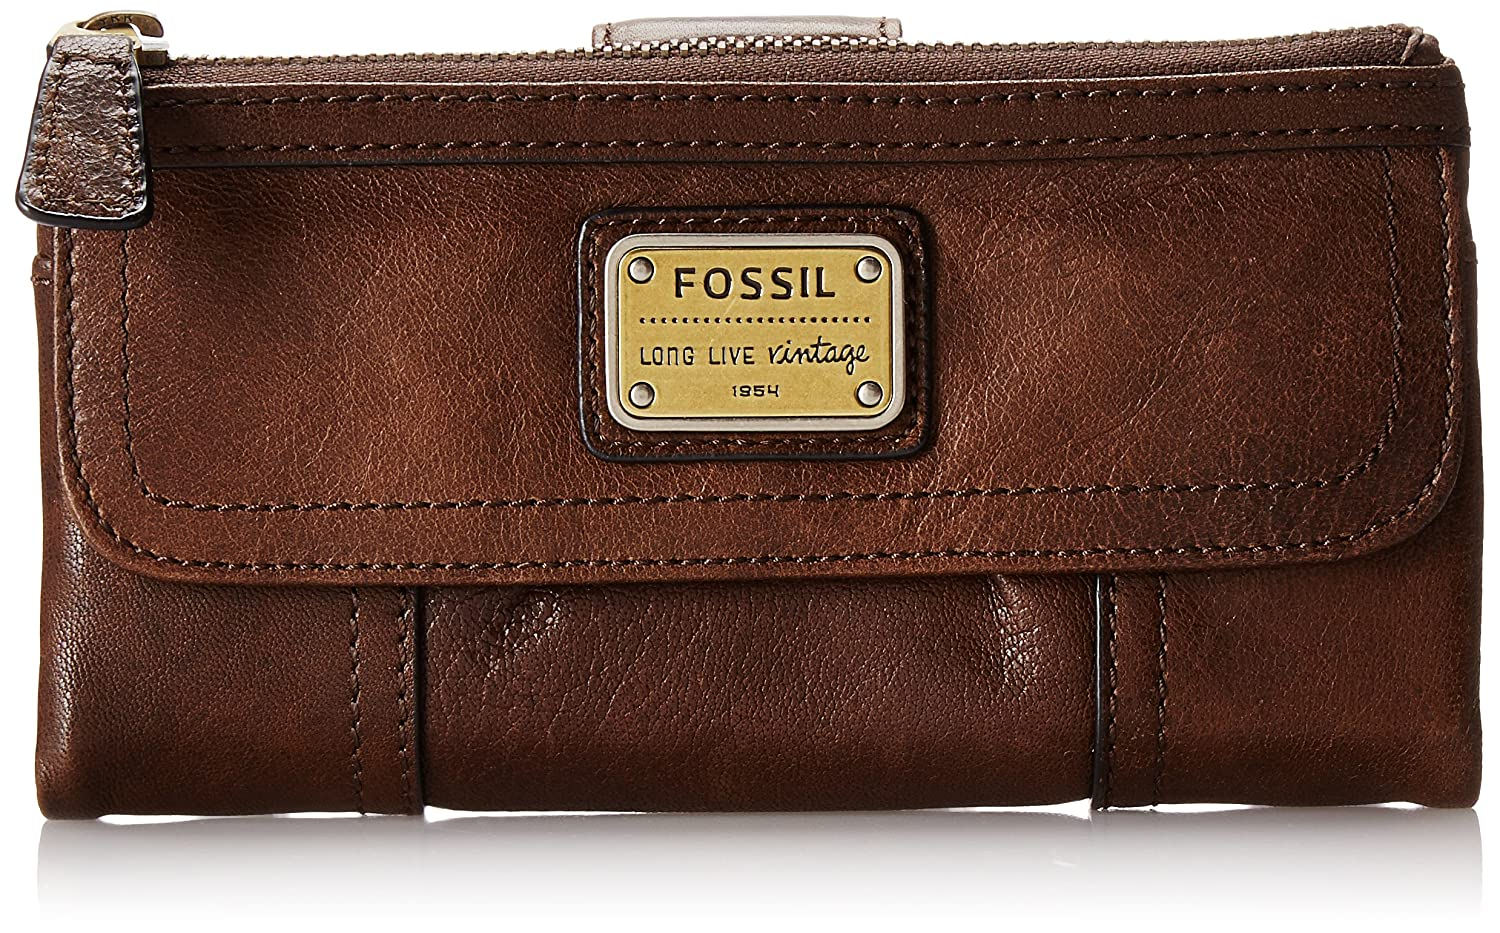 Fossil Emory Clutch Fossil Emory Wallet Espresso One Size Fossil Bags Women